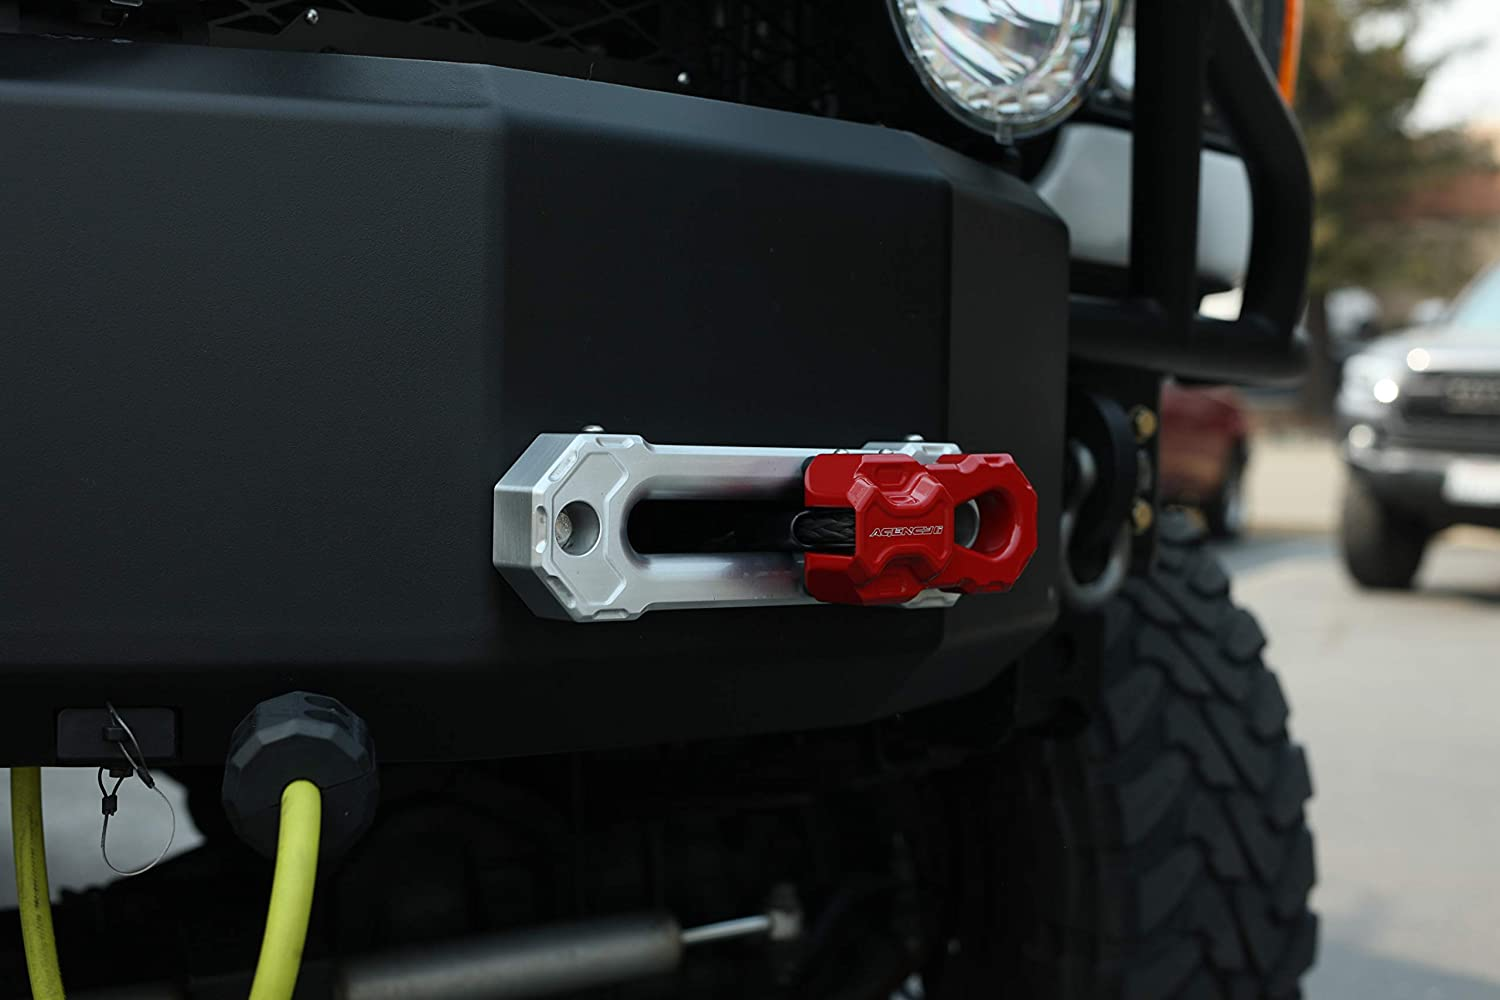 Made in The USA with US Certified Materials Agency 6 Billet Winch Shackle Lightweight Aluminum Winch Attachment for Synthetic Line Red 19,000 Pound Load Limit